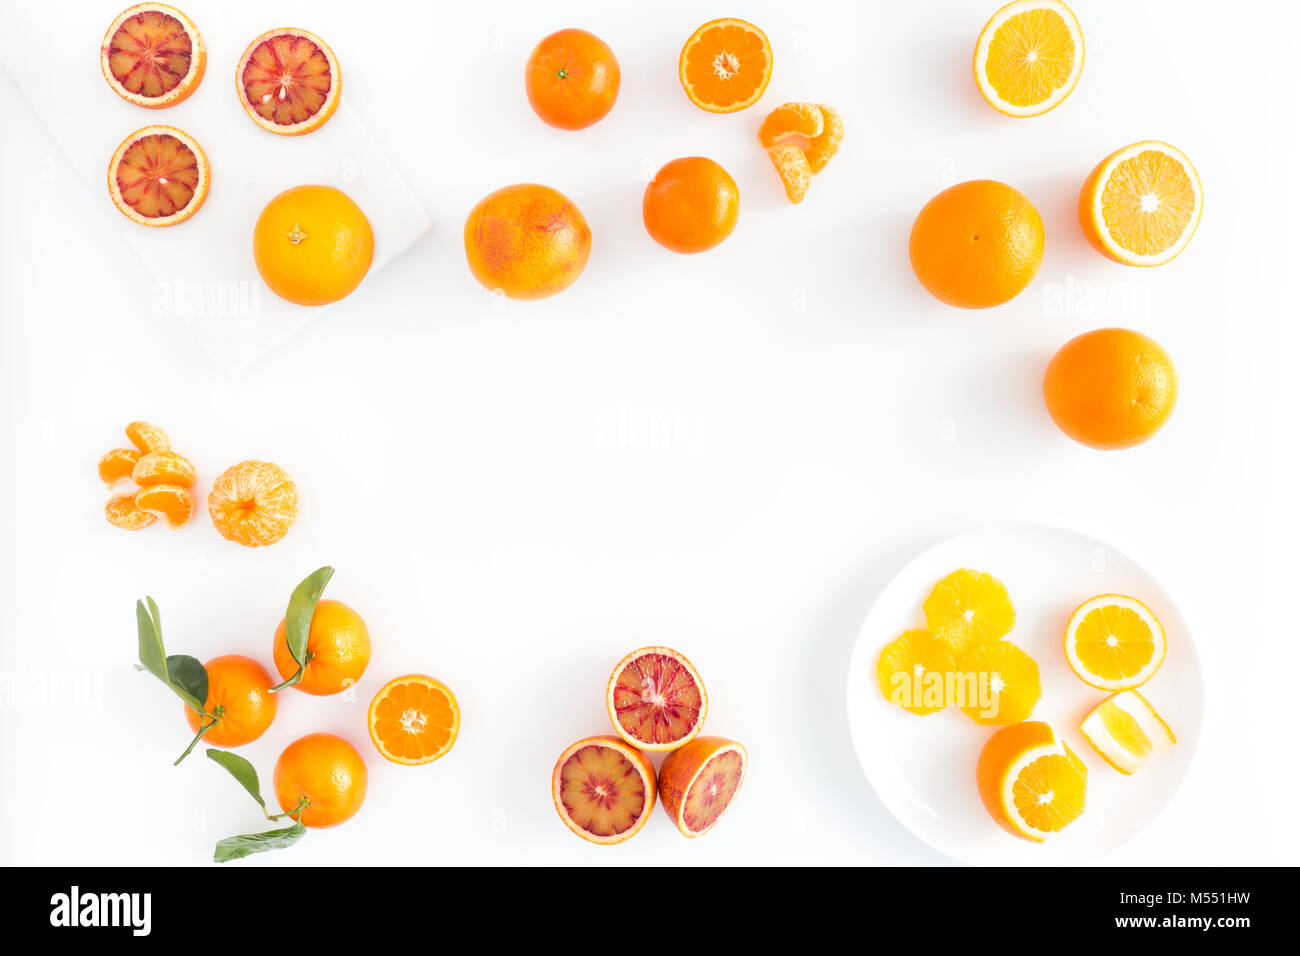 Composition of blood oranges, oranges and  clementines whole, halved, peeled, and sliced arranged on marble board, - Stock Image